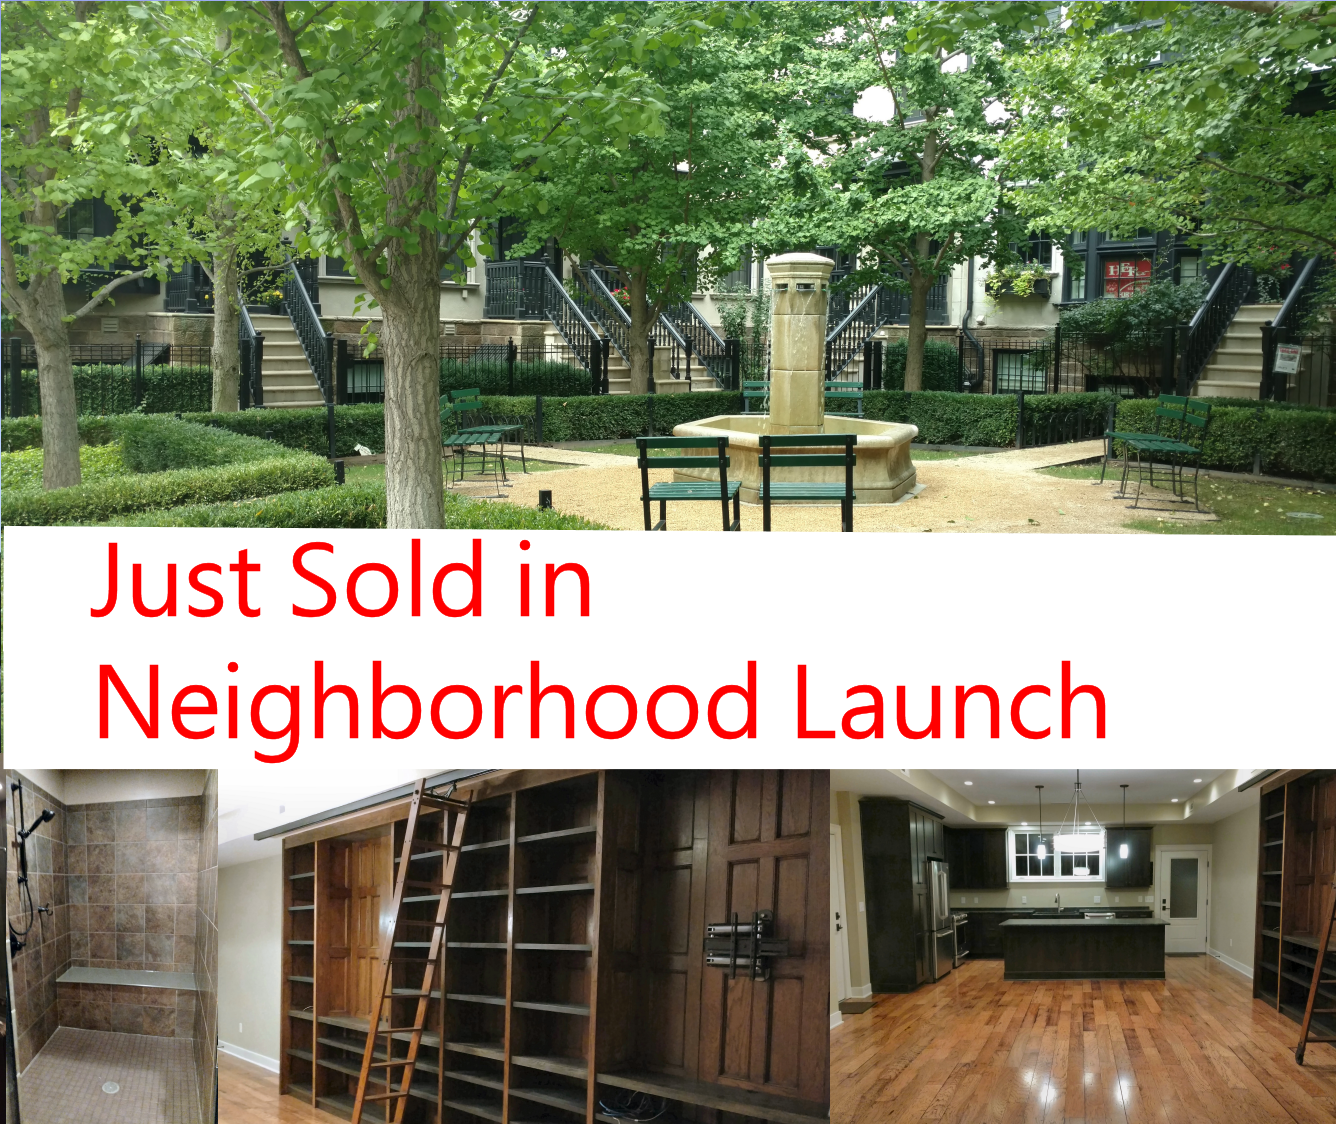 Just Sold in Neighborhood Launch, downtown Columbus, 186 E Gay St, Columbus, OH 43215